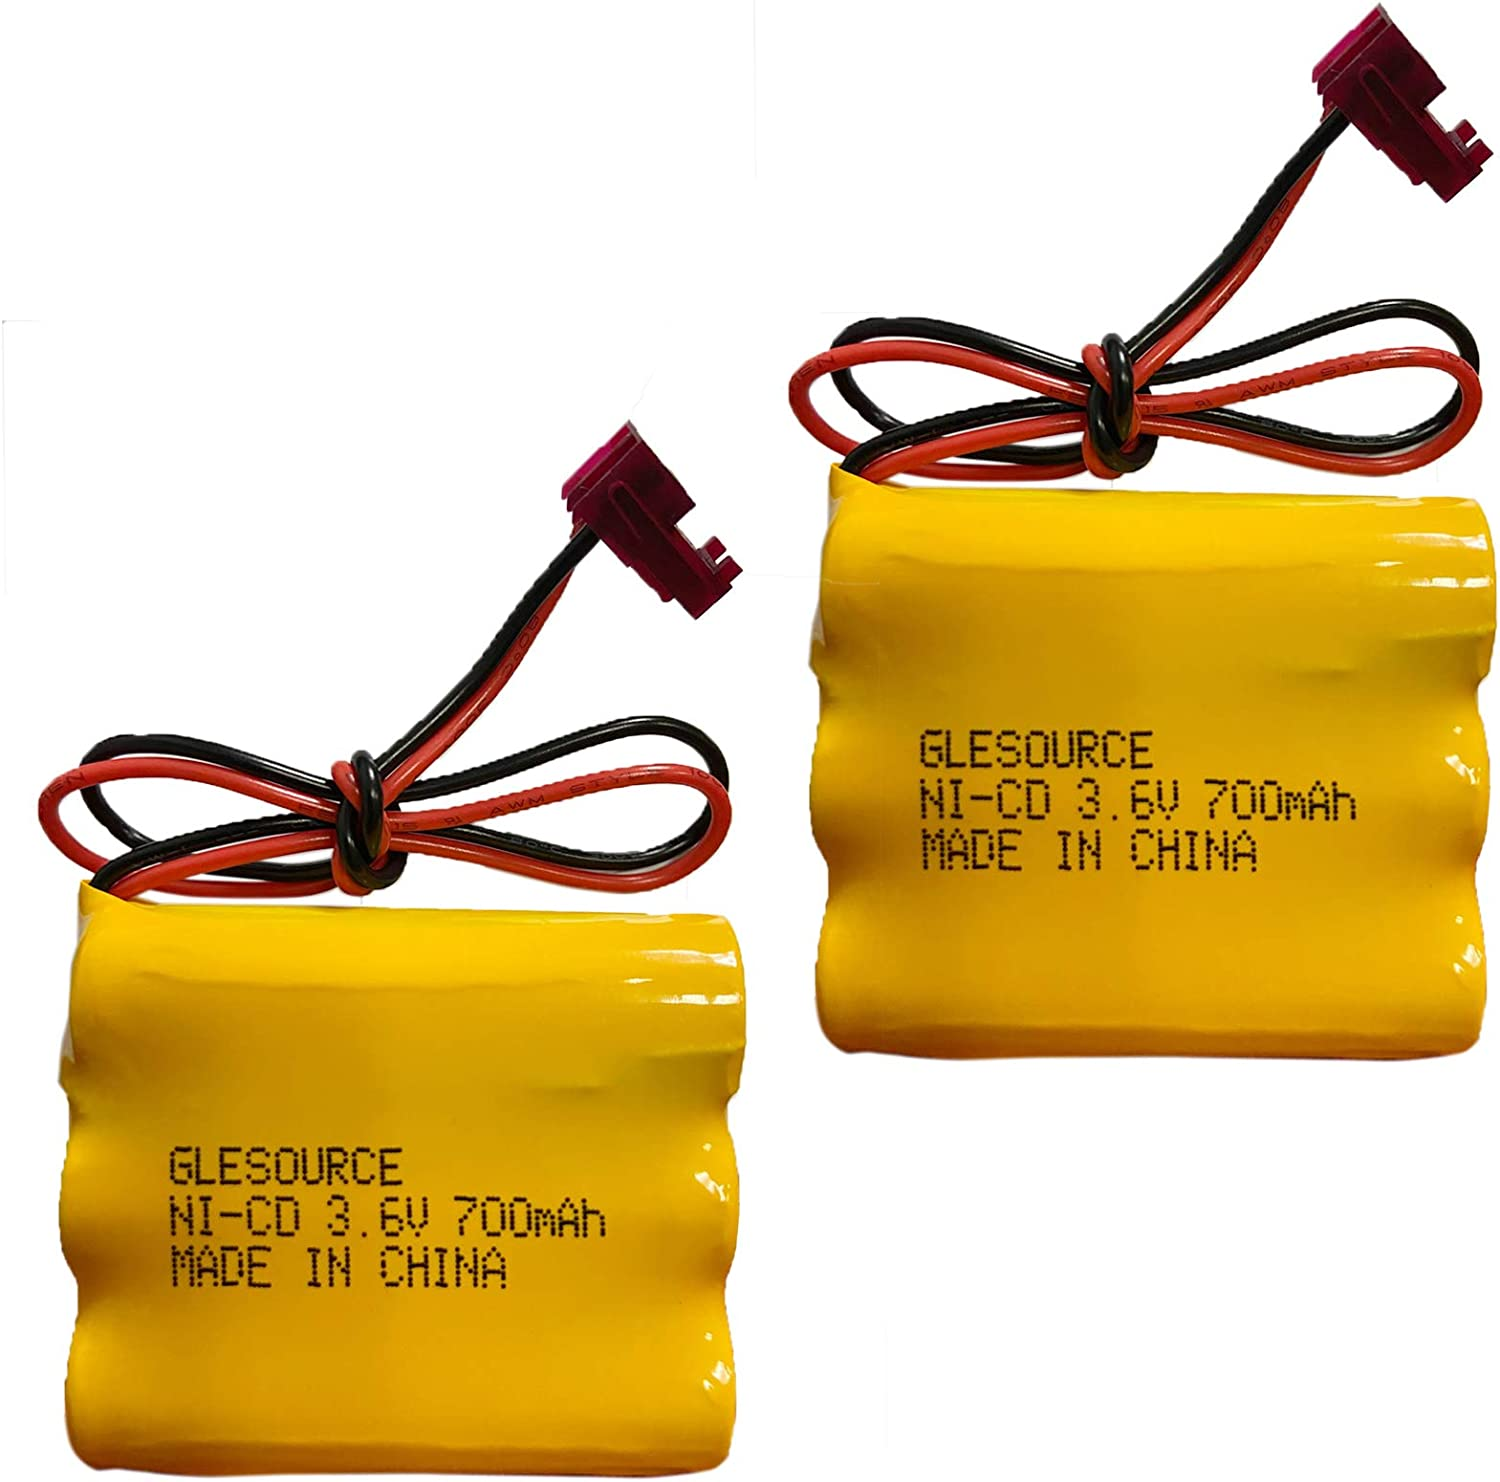 2 Pack GLESOURCE 3.6V 700mAh Ni-CD Battery Pack Replacement for Sure-Lites 026-148 026148 Exit Sign Emergency Light SL-026148 SL-026-148 SL026148